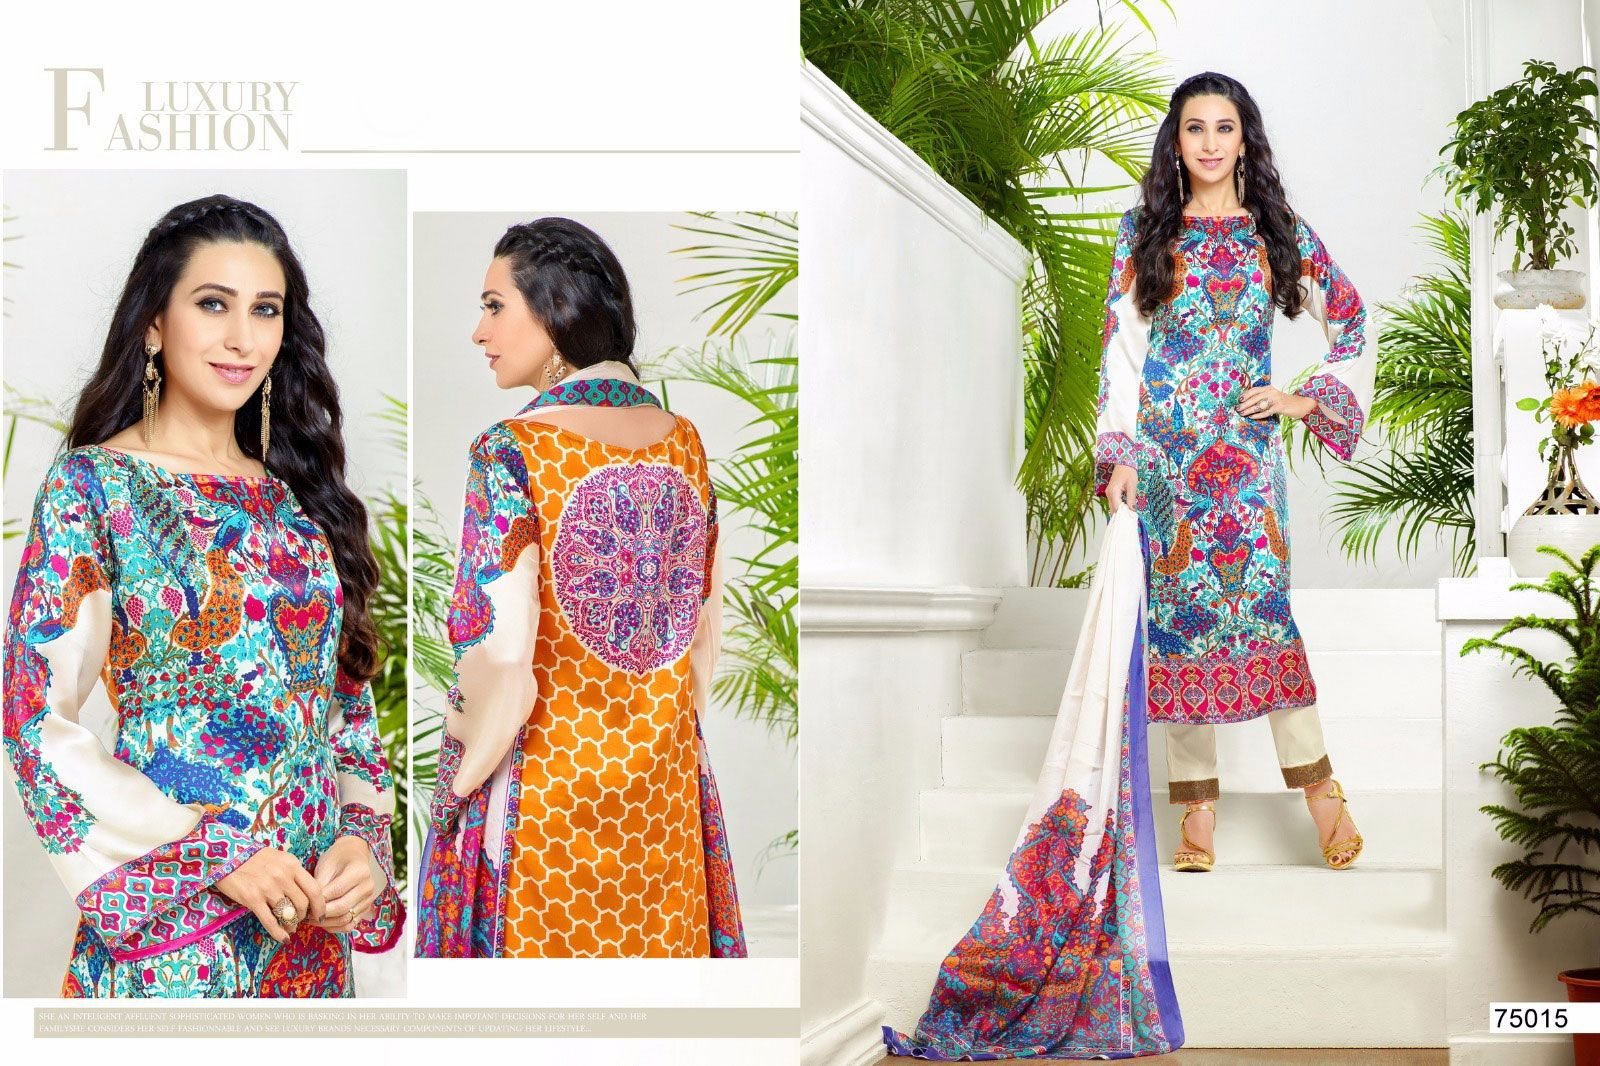 Look sensationally awesome in this multi colour georgette and satin Karishma Kapoor designer suit. The lovely print work throughout the attire is awe inspiring. Comes with matching bottom and dupatta. (Slight variation in color, fabric & work is possible. Model images are only representative.)